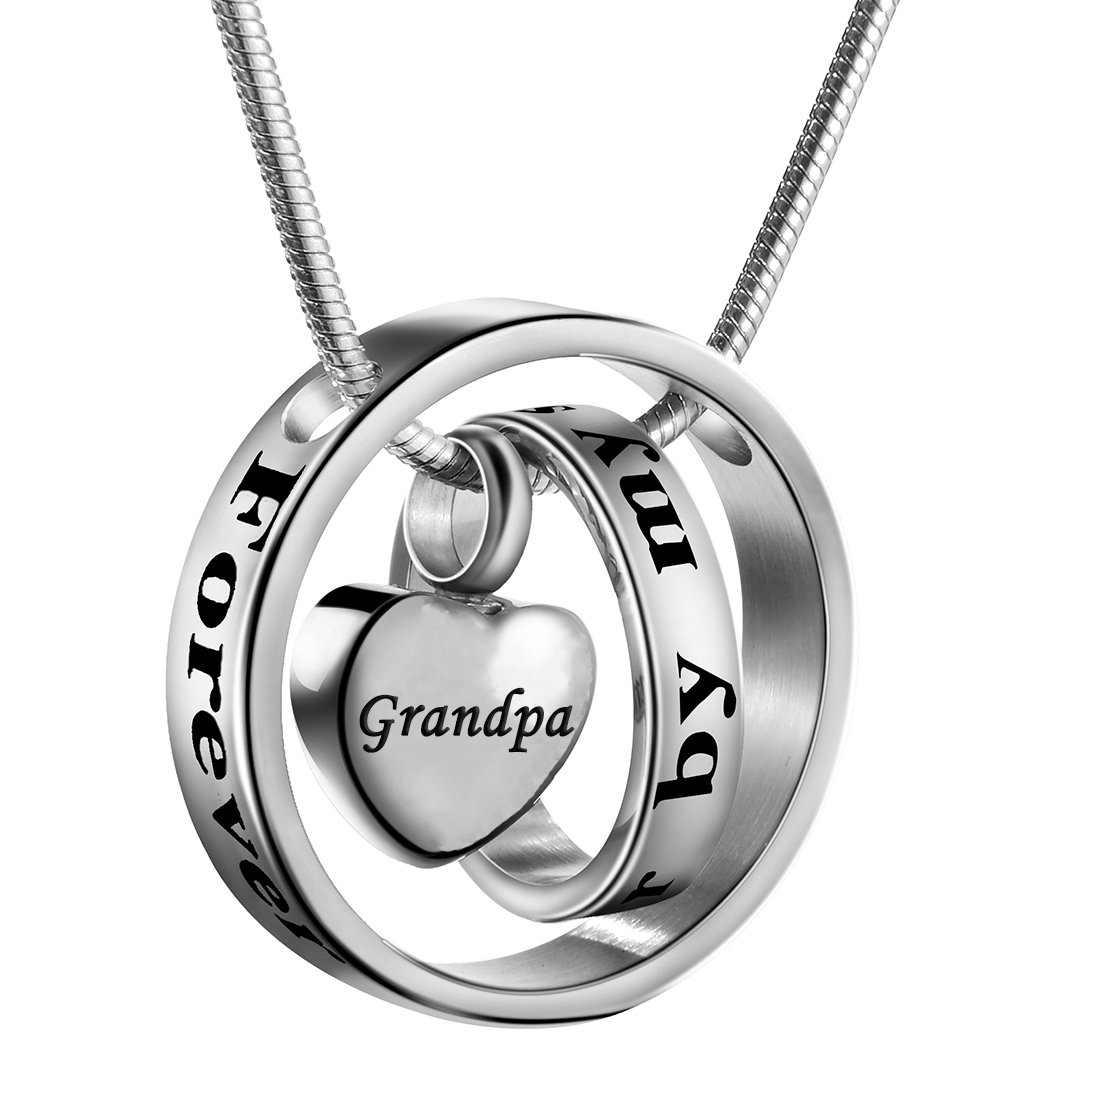 Cremation Jewelry No Longer by My Side, Forever in My Heart Carved Locket Memorial Necklace Keepsake Urn Pendant Norya NoryaNYKC001V1